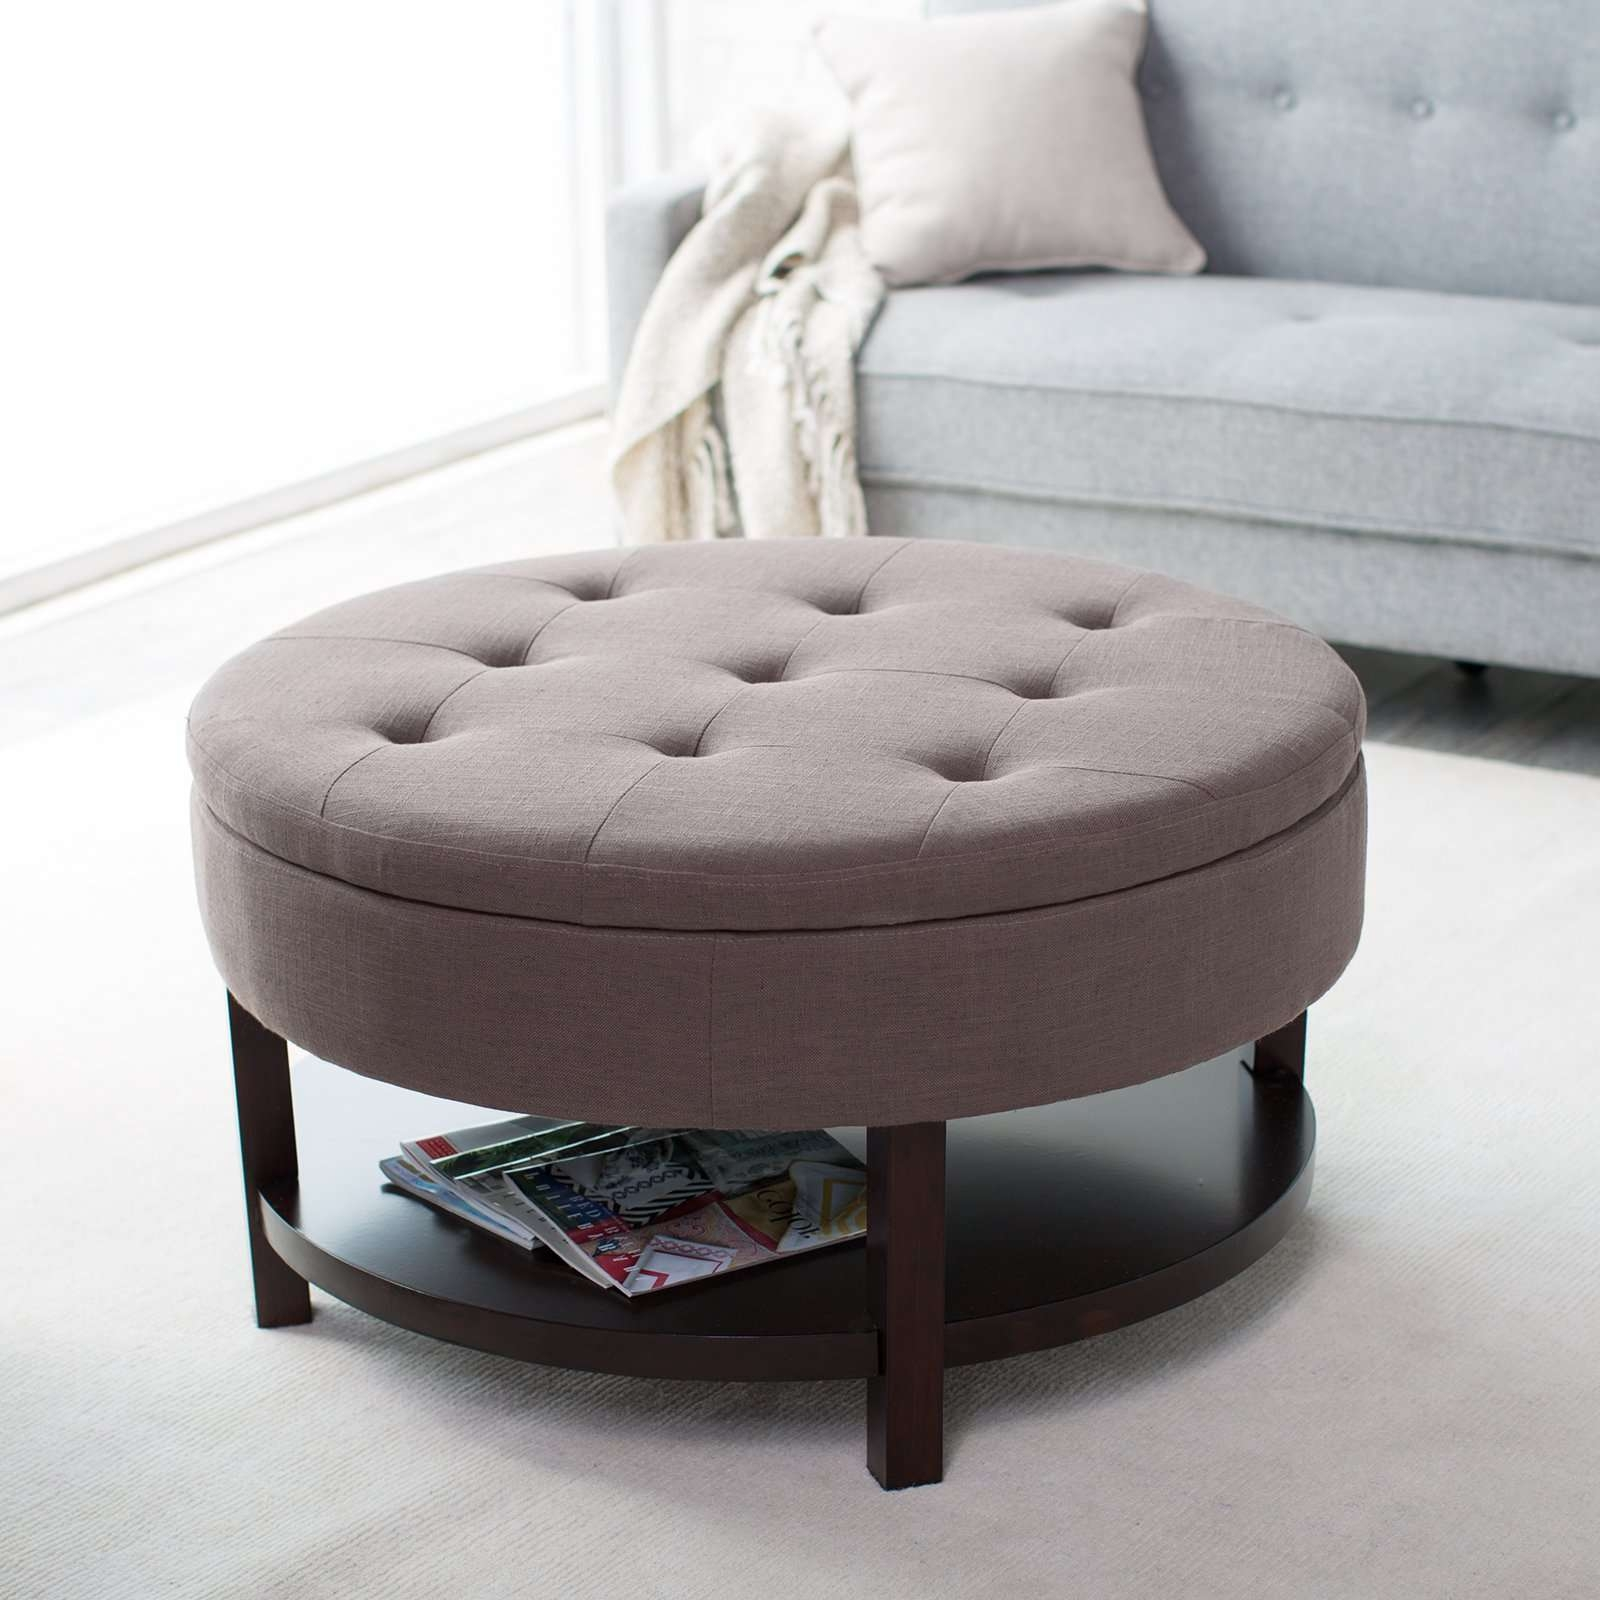 Coffee Table : Magnificent Brown Leather Ottoman Coffee Table Intended For Favorite Round Upholstered Coffee Tables (View 6 of 20)